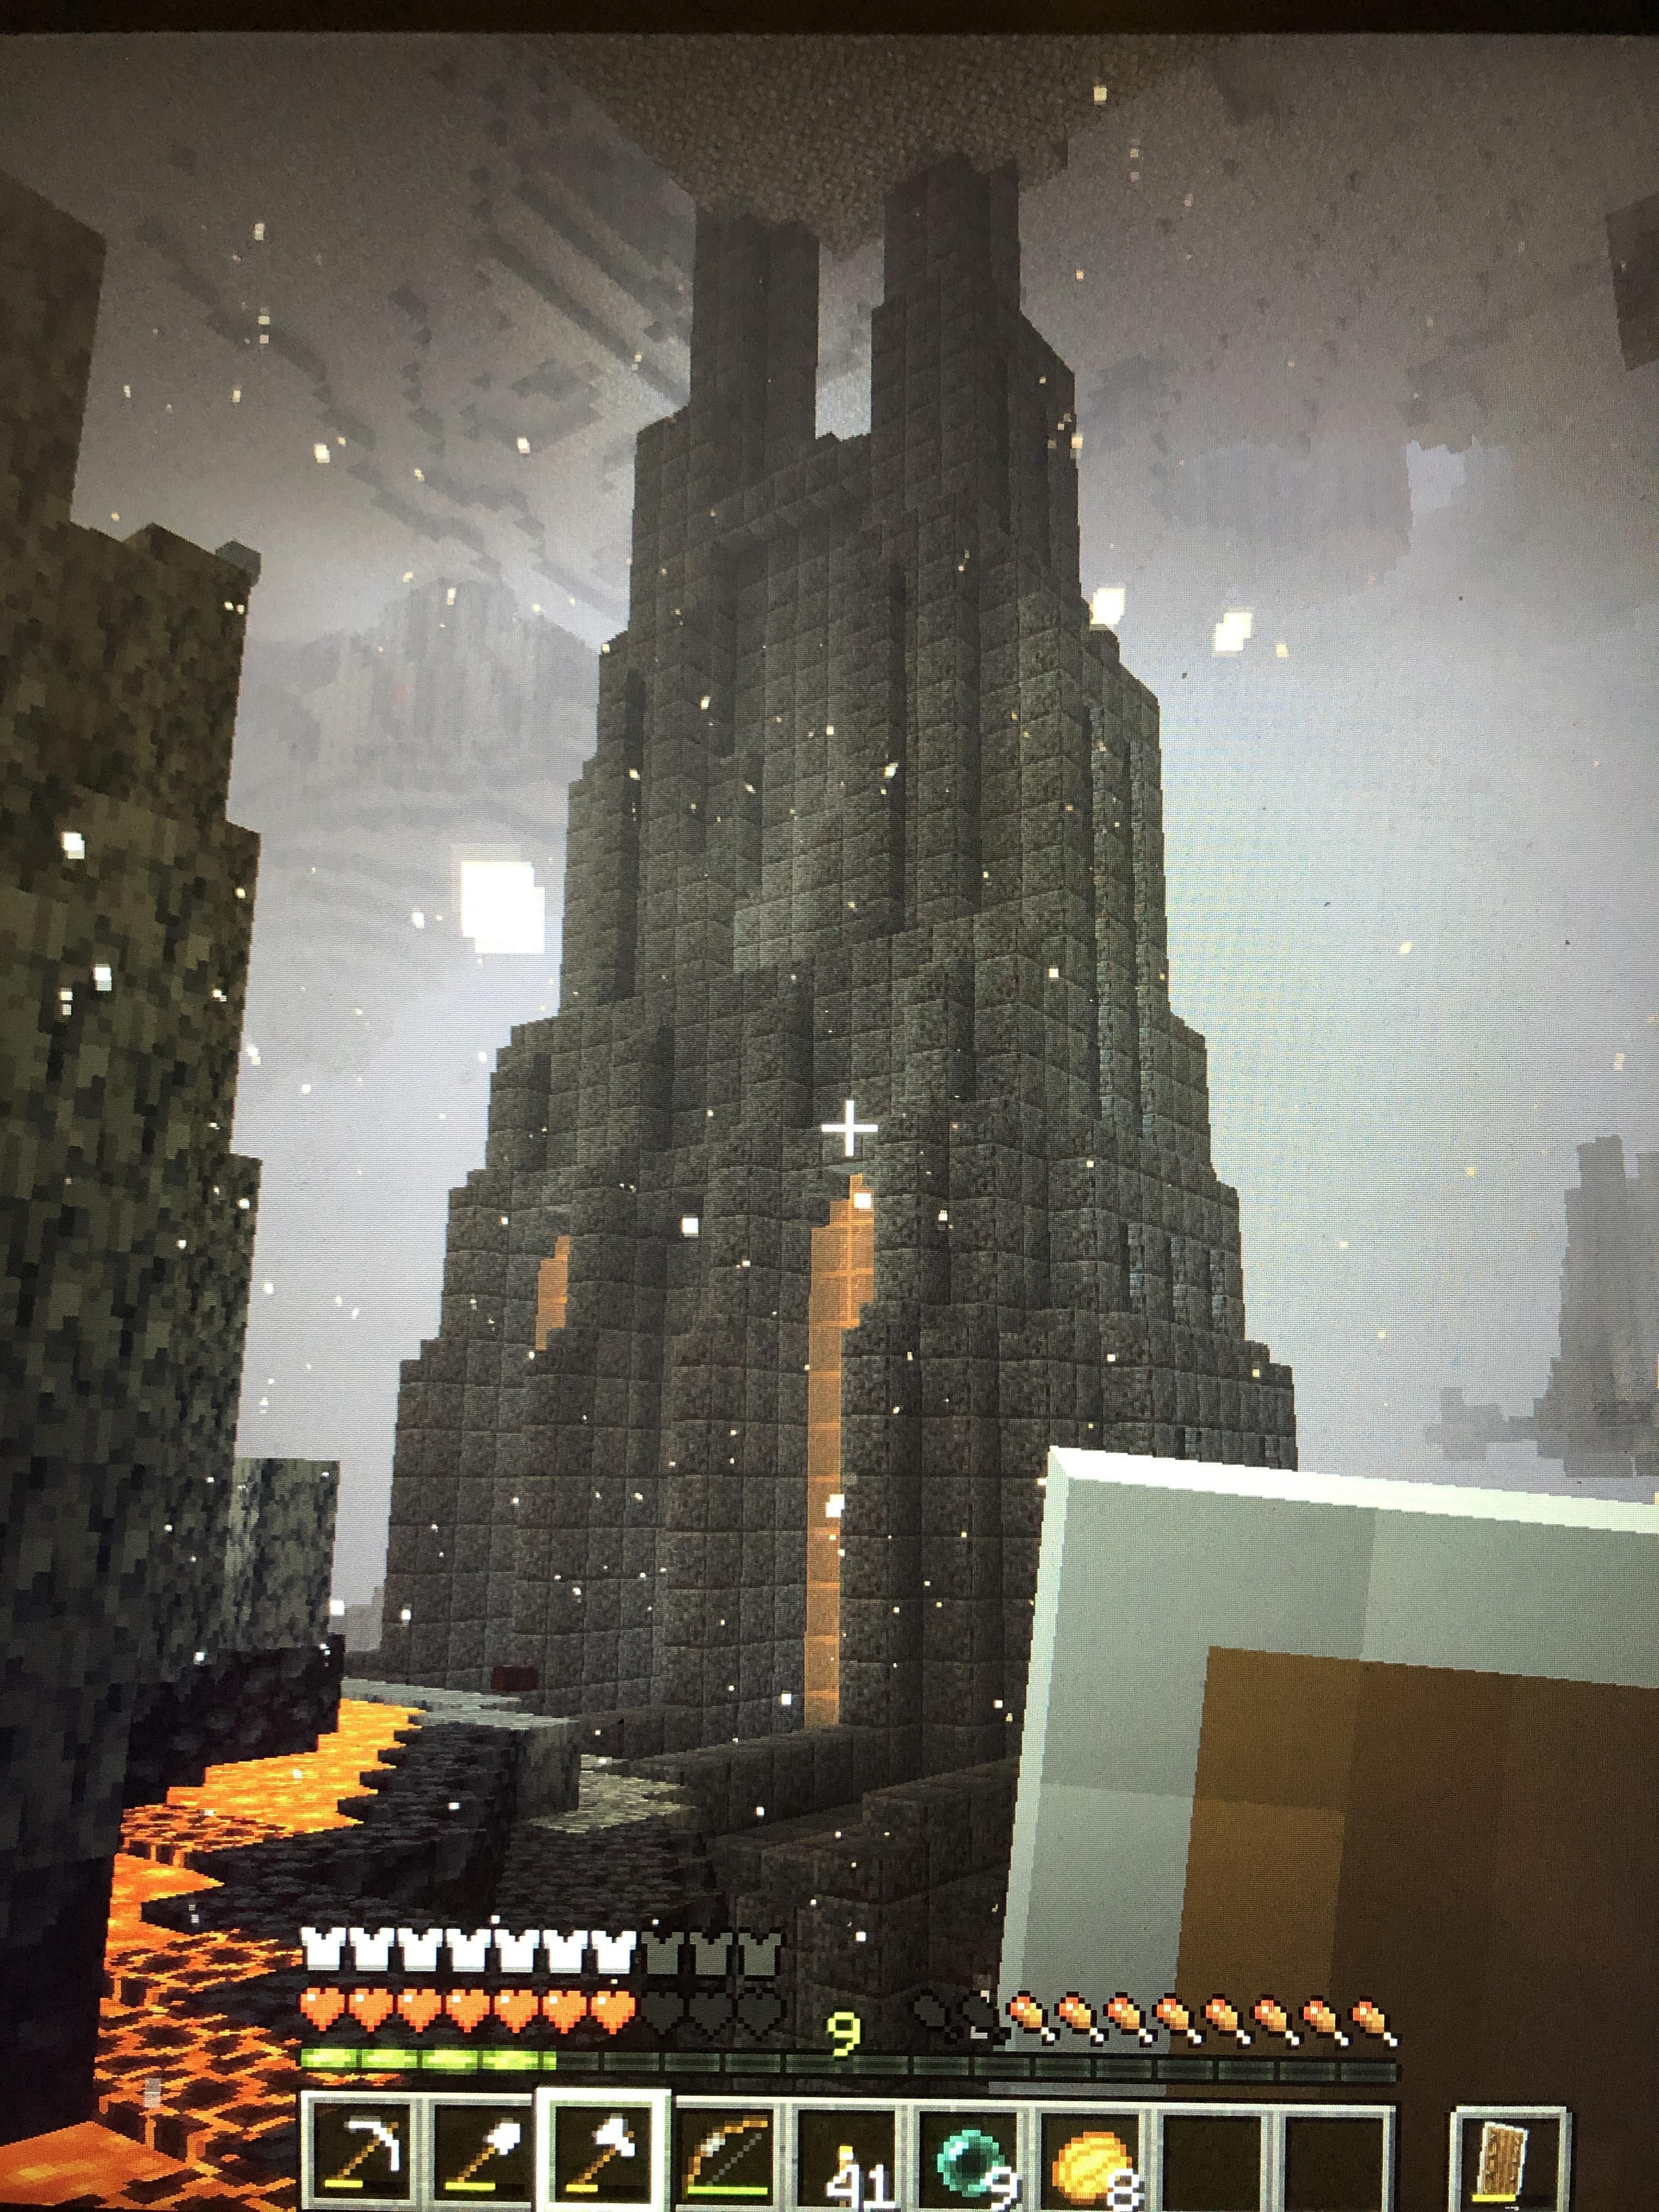 My First Starter Base In 1 16 Made Almost Entirely Of Polished Black Stone By U Dafriggintoaste In 2020 Minecraft Wallpaper Minecraft Architecture Minecraft Medieval